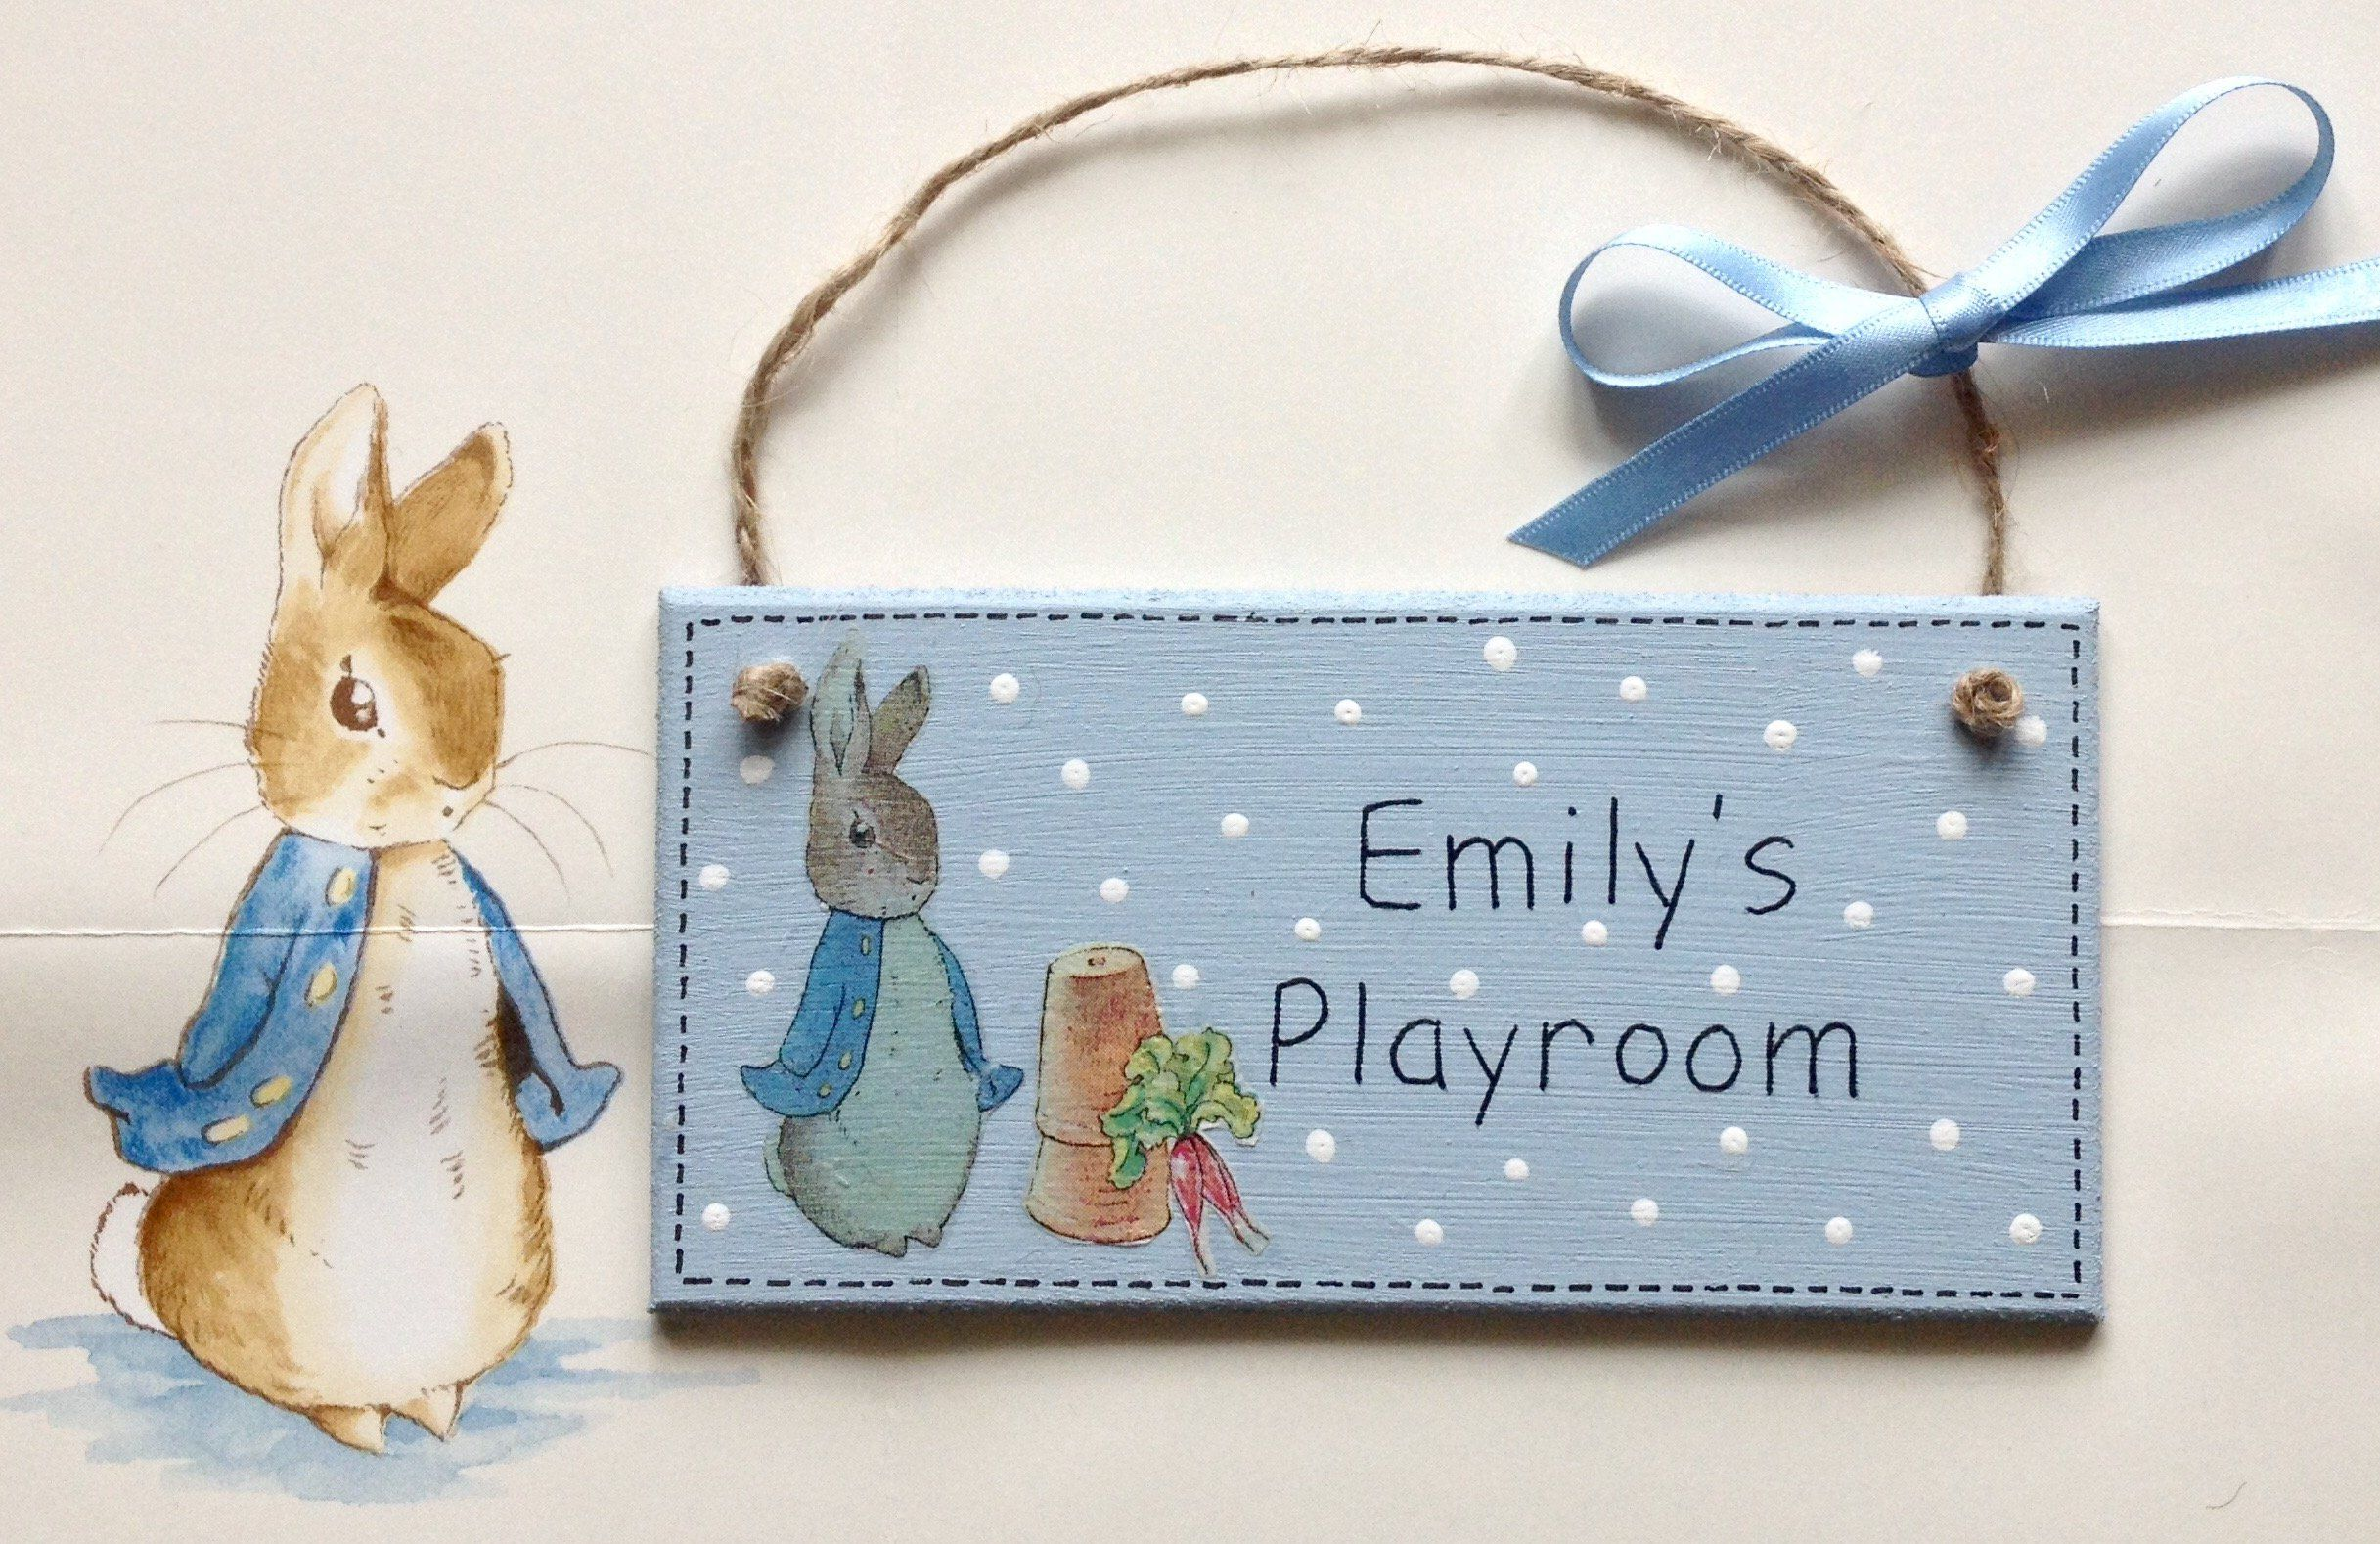 Personalised Handpainted and Decoupaged Beatrix Potter Peter